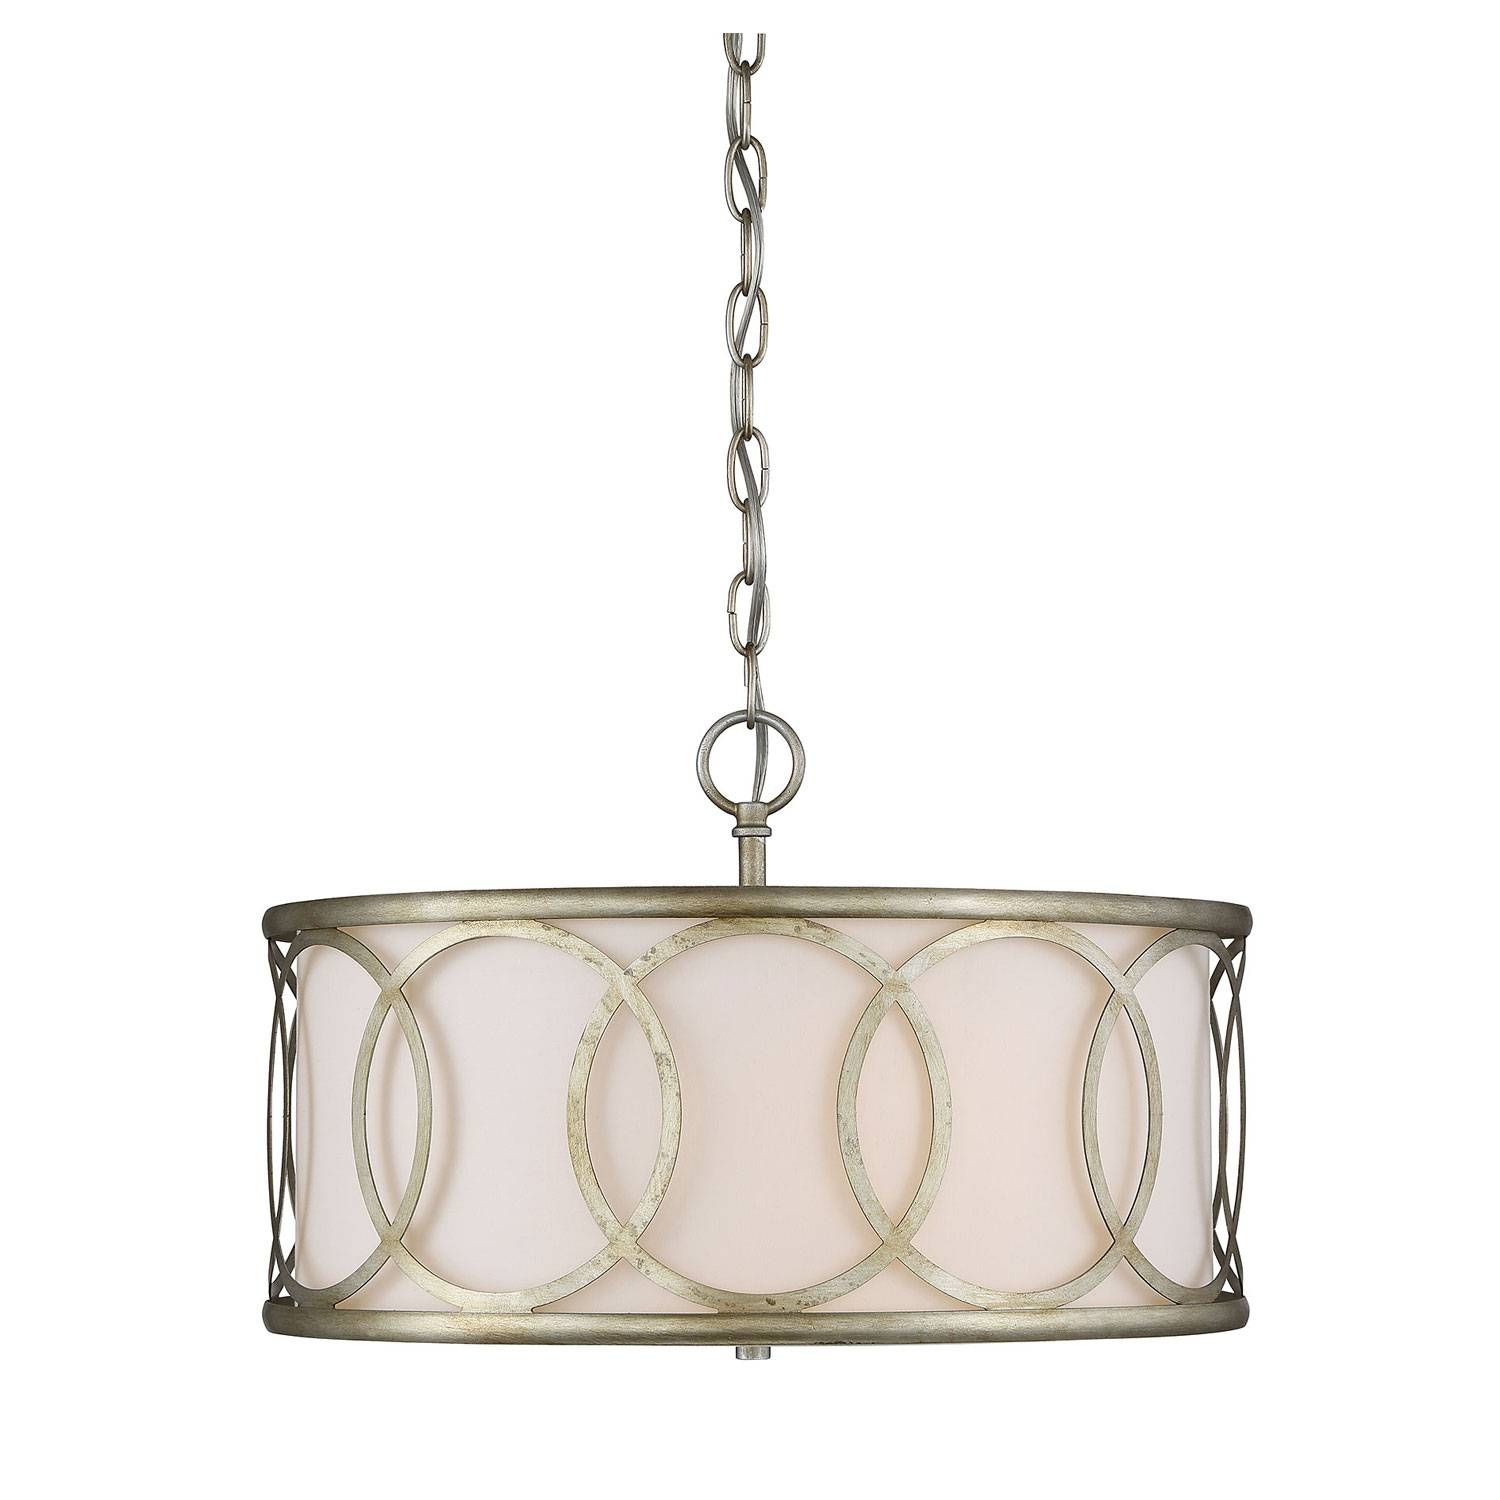 251 First Linden Argentum Three Light Drum Pendant On Sale throughout Drum Pendant Lighting (Image 1 of 15)